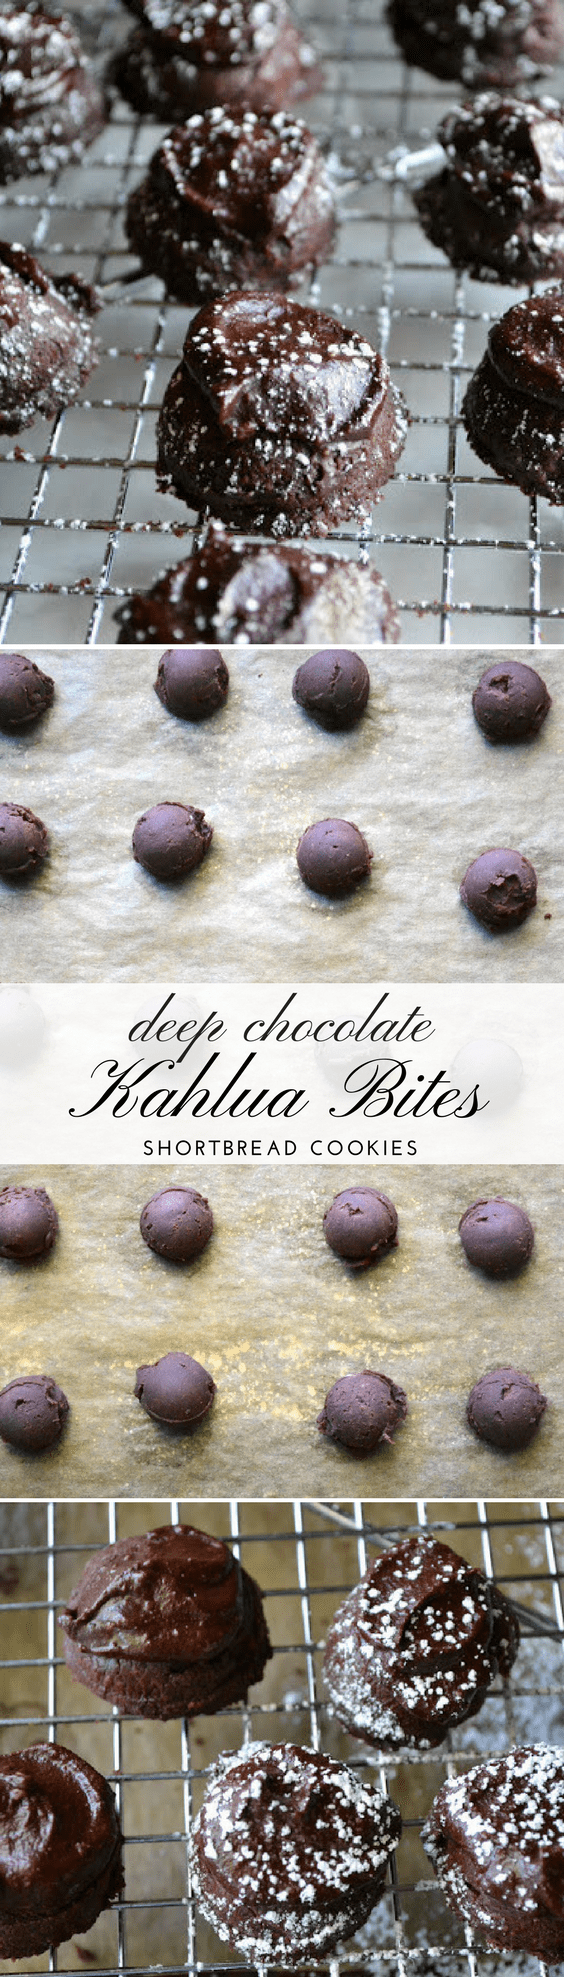 Deep Chocolate Kahlua Bites ~ little mounds of melt in your mouth chocolate shortbread topped with a deep chocolate Kahlua buttercream! #cookies #chocolatecookies #dropcookies #shortbreadcookies #coffee #kahlua #holidaycookies #Christmascookies #dessert #buttercream #darkchocolate